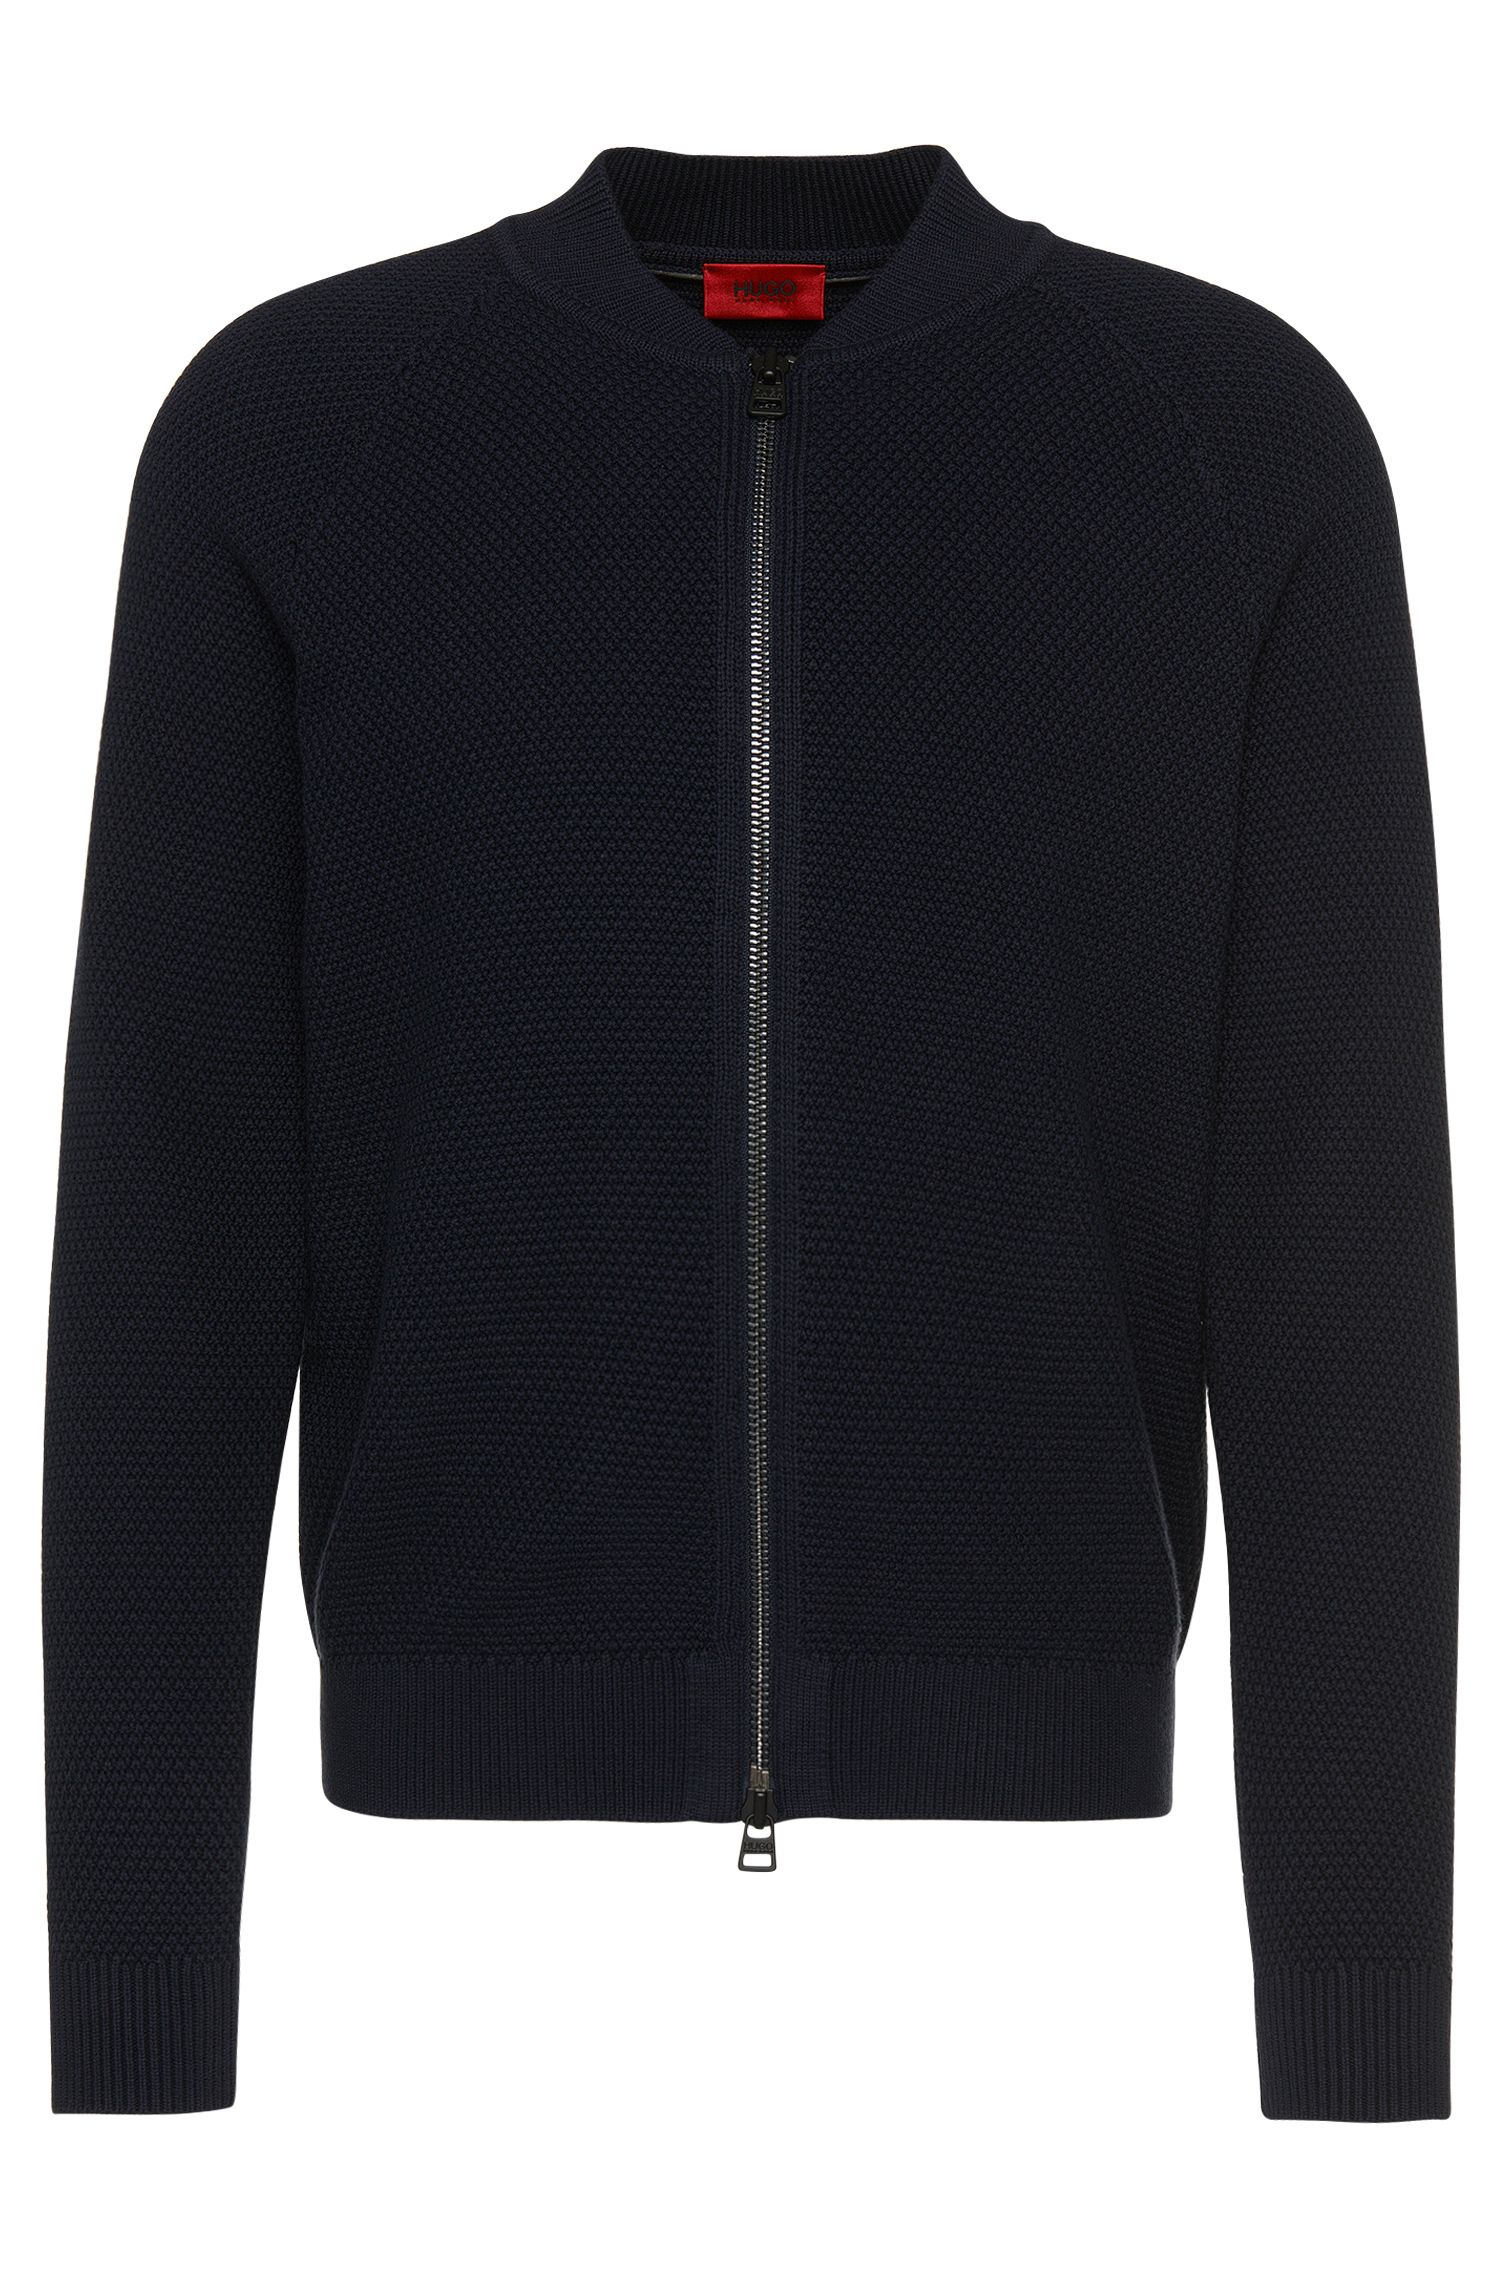 'Saio' | Virgin Wool Cotton Textured Zip Cardigan